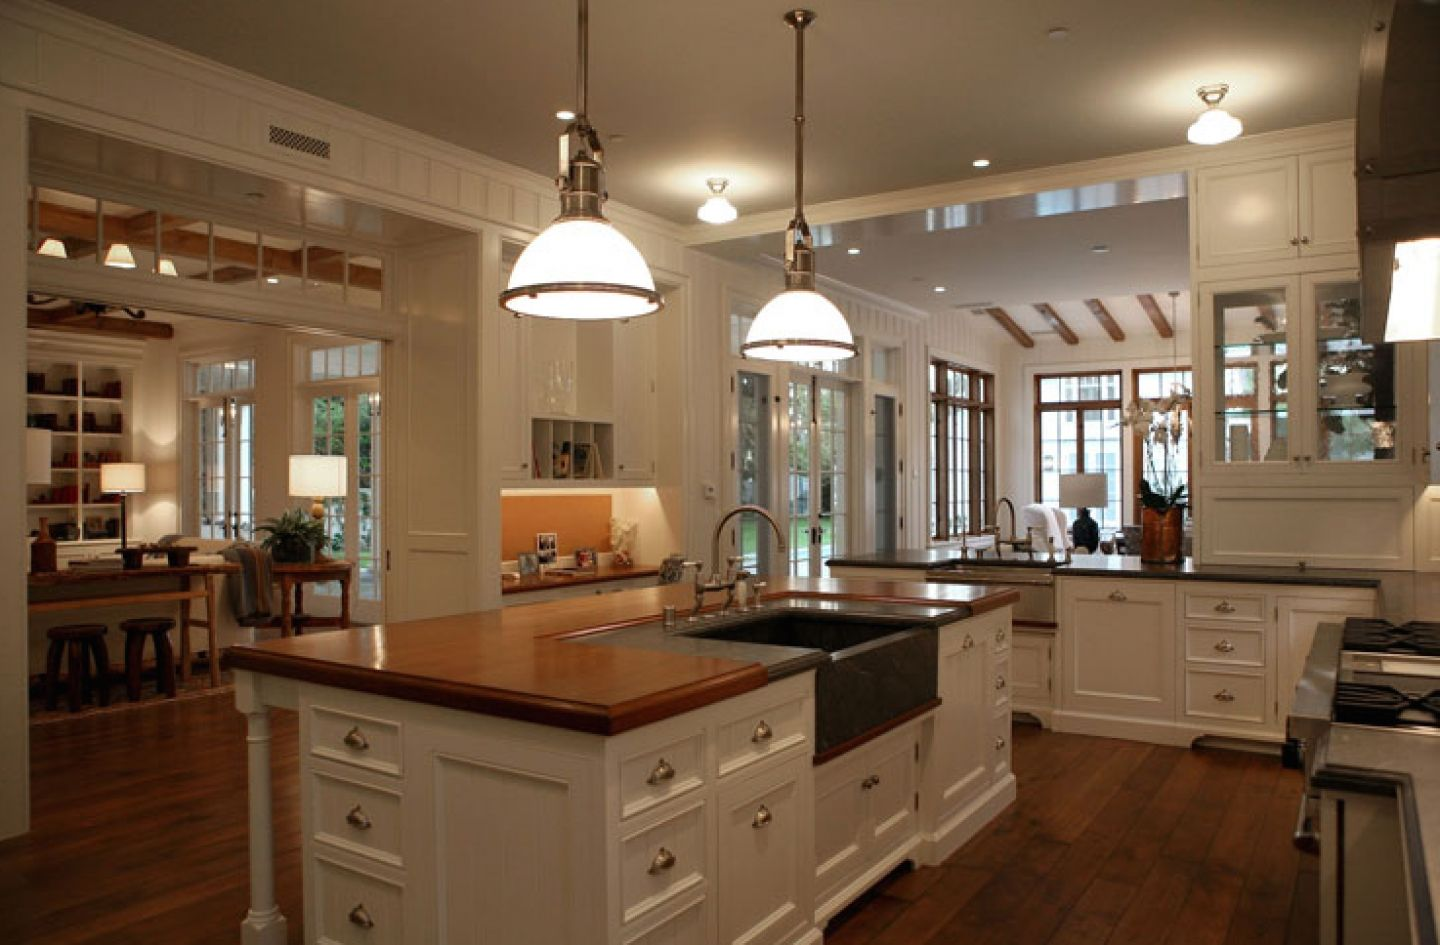 Photos Classic French Kitchen With Modern Nuance Https Wp Me P8owwu Nd Country Kitchen Designs Large Kitchen Design Open Floor Plan Kitchen